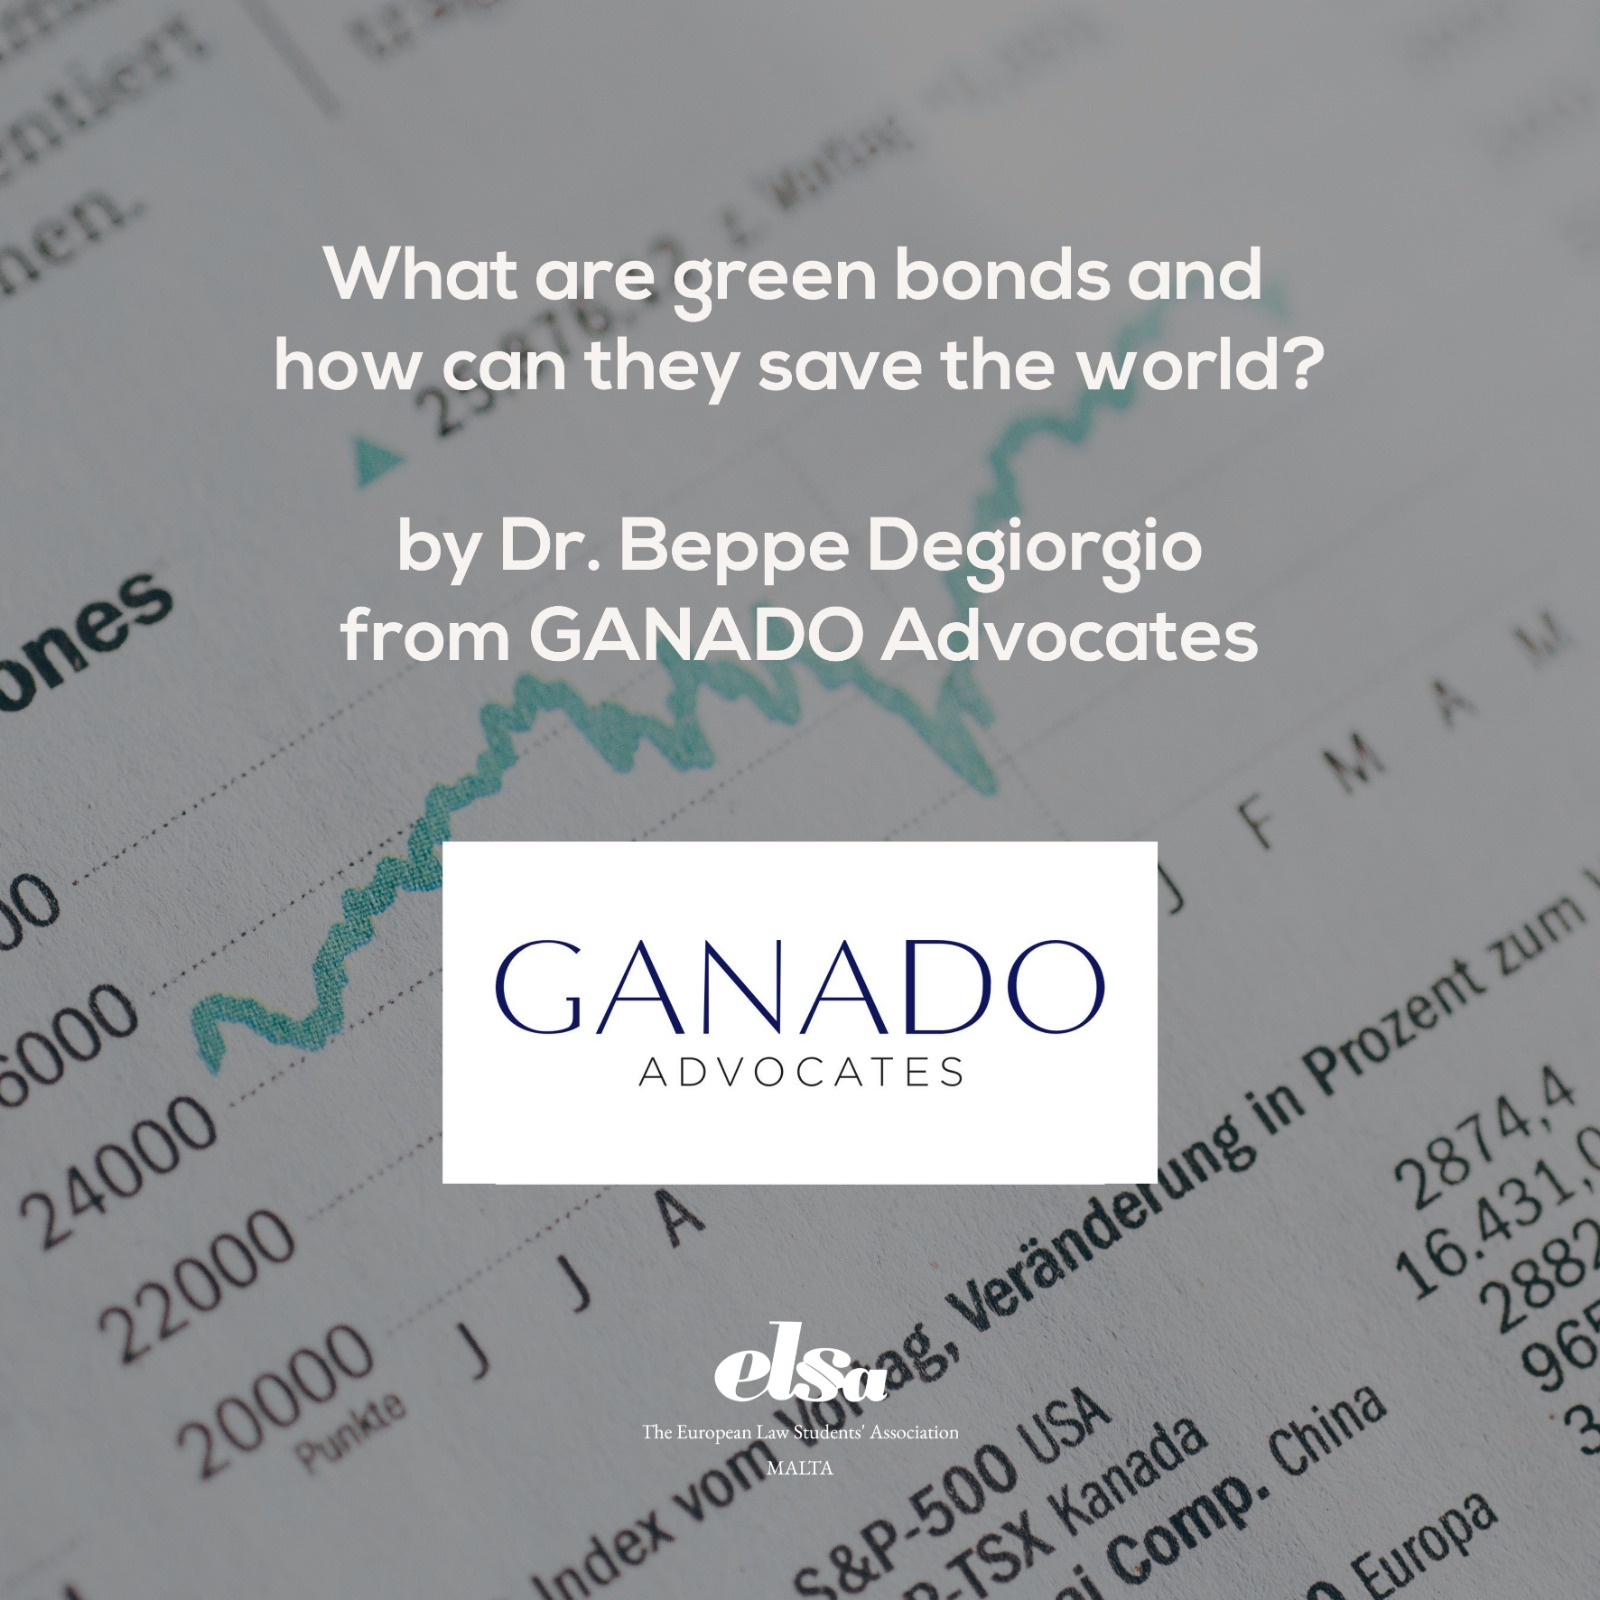 What are green bonds and how can they save the world?